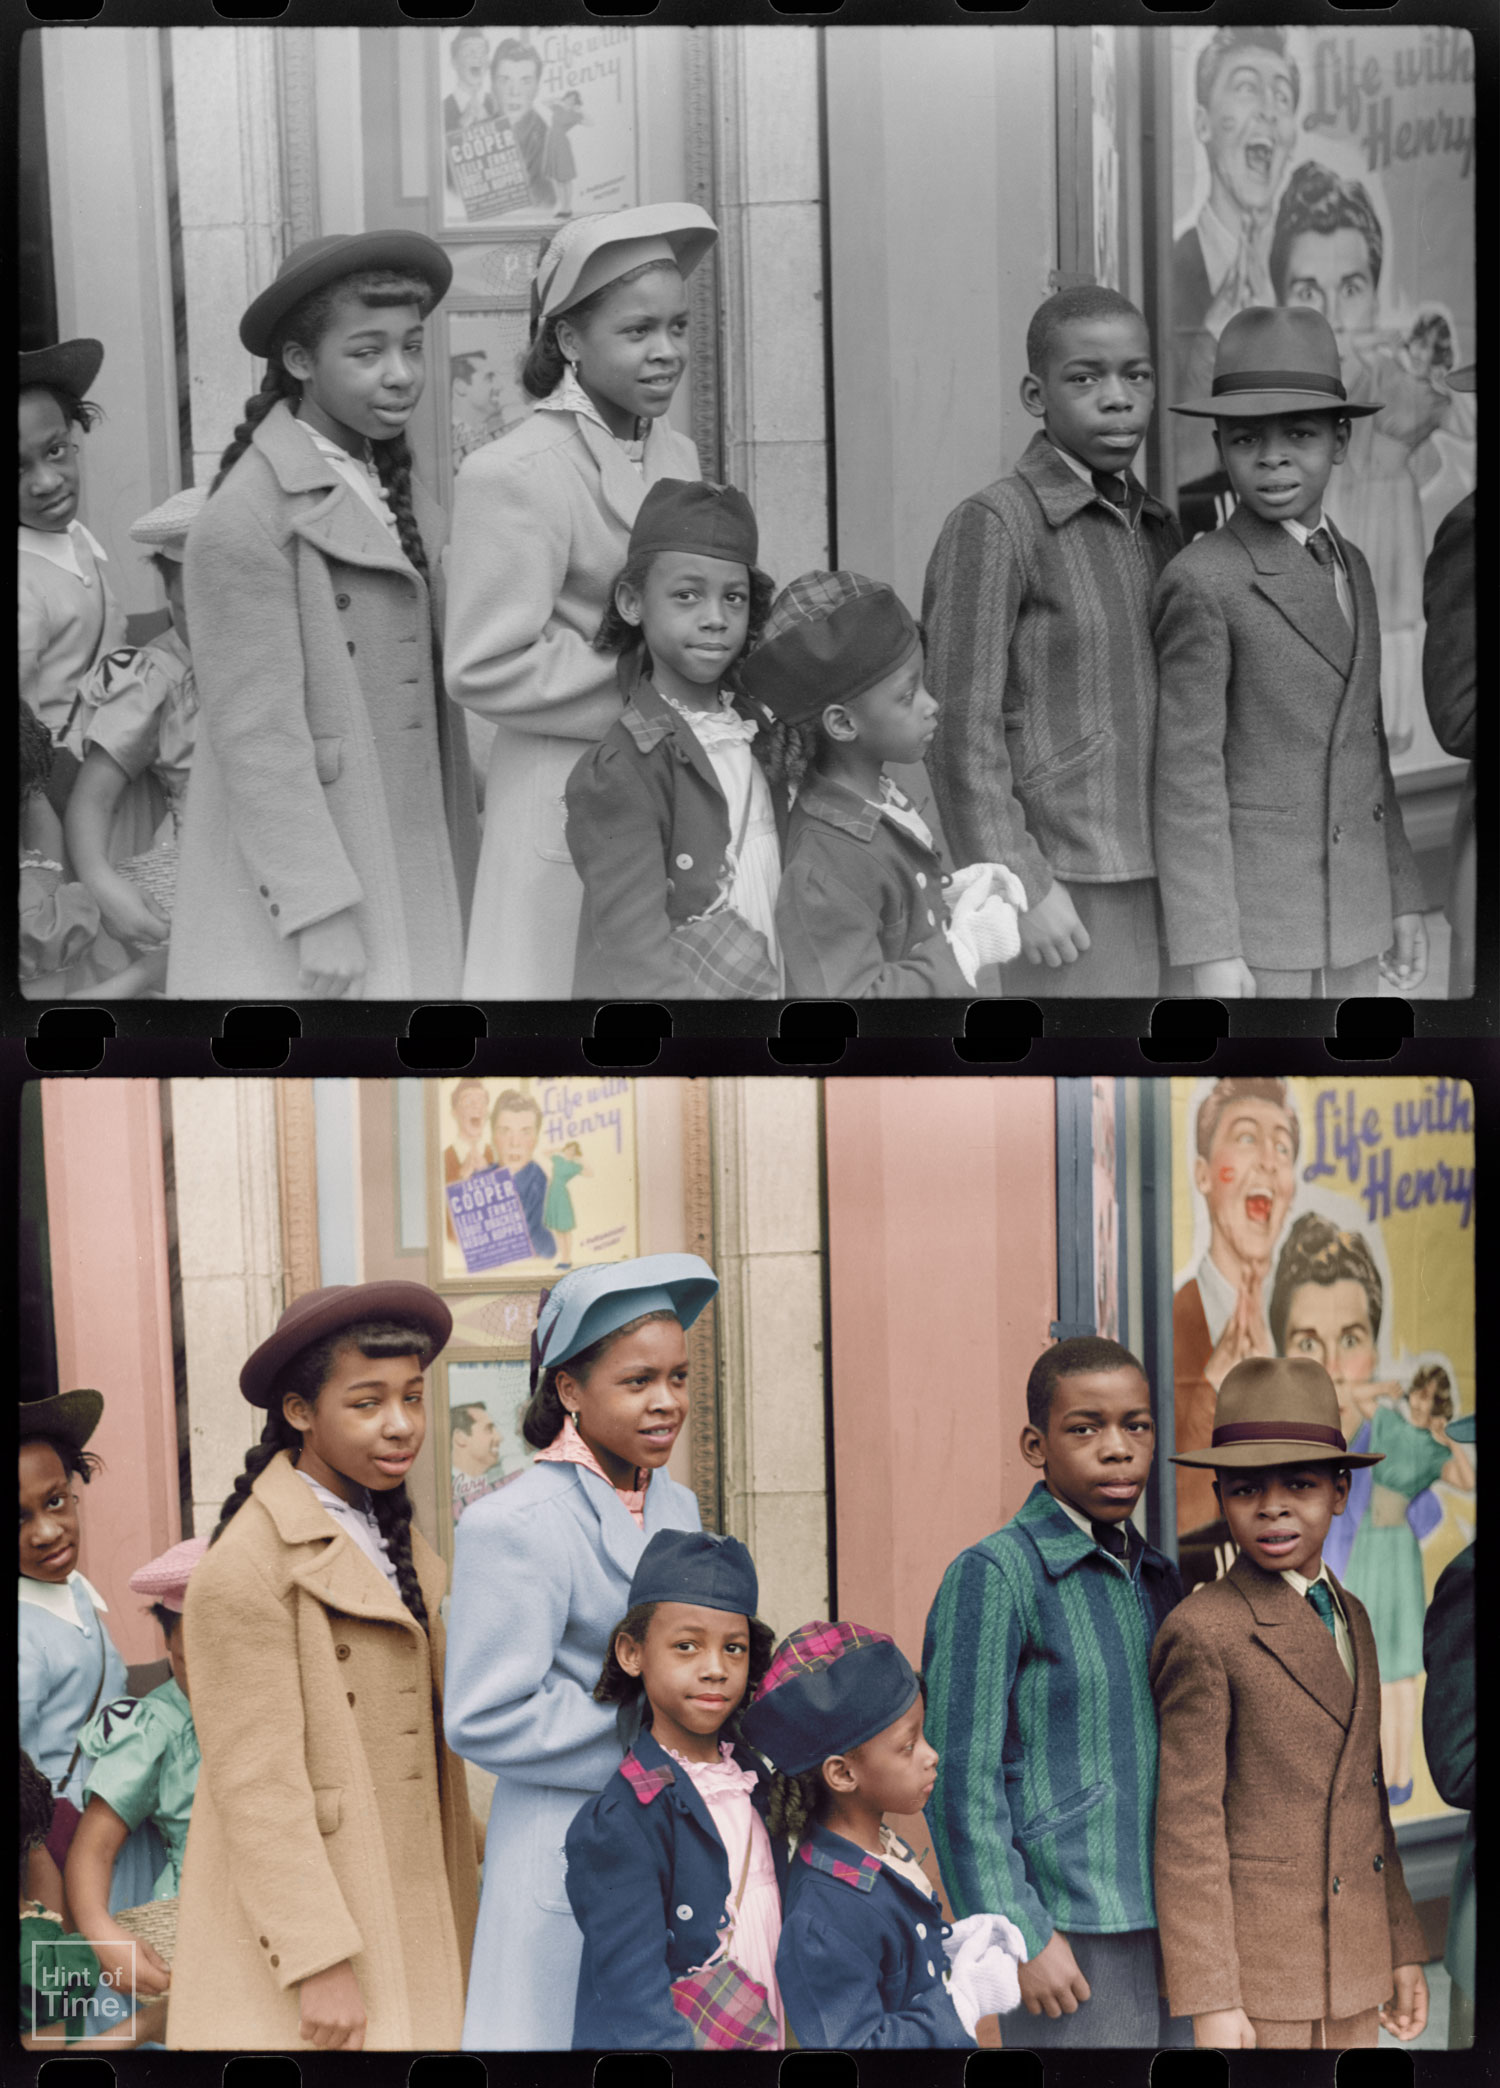 Impressive colorization skills - Queueing up at the cinema in Chicago in 1941